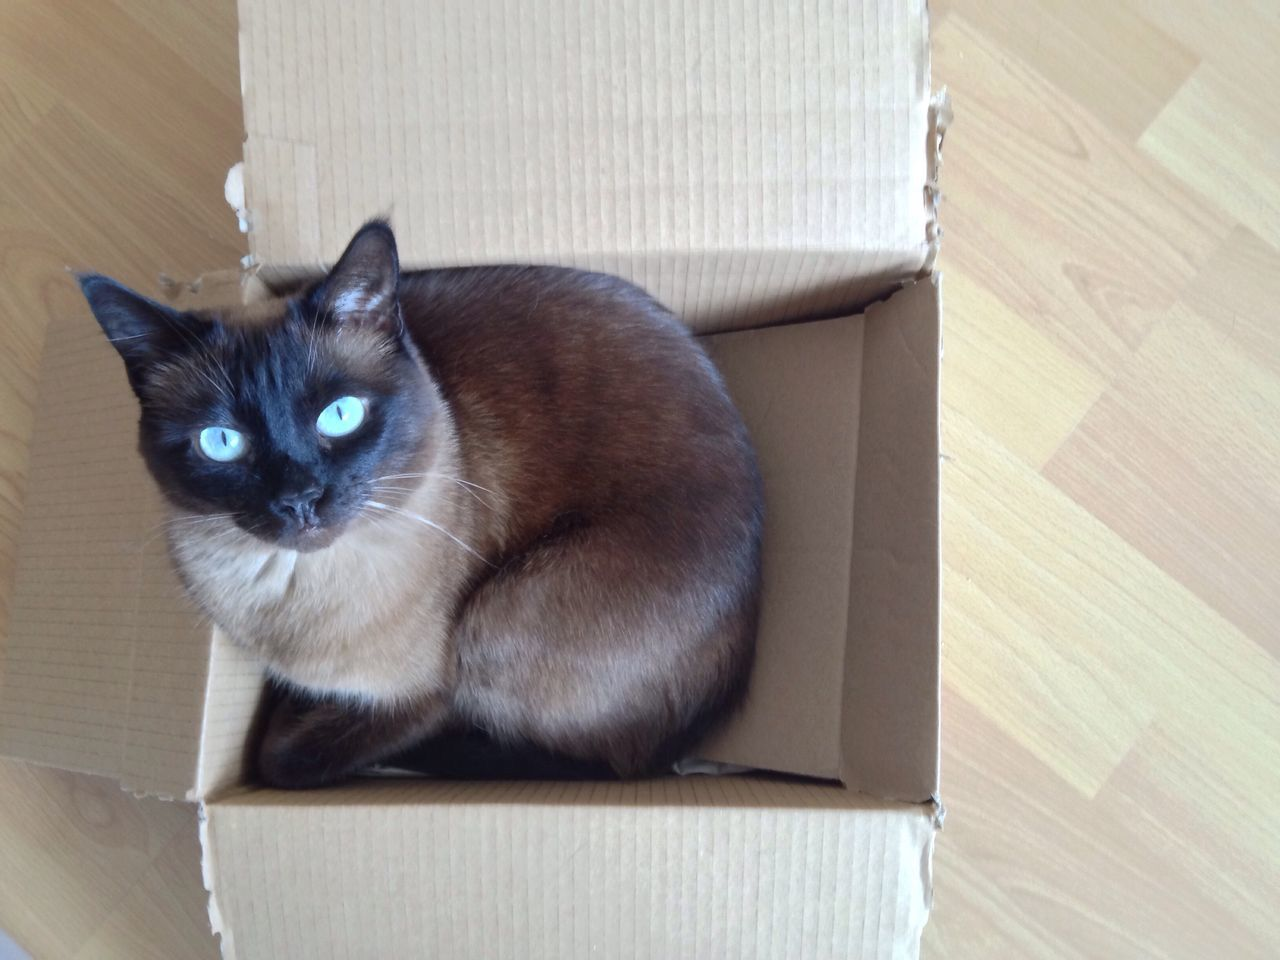 Cat Cat In A Box Domestic Cat Pets Domestic Animals Feline One Animal Cardboard Box Indoors  Animal Themes Looking At Camera Mammal Portrait No People Sitting Siamese Cat